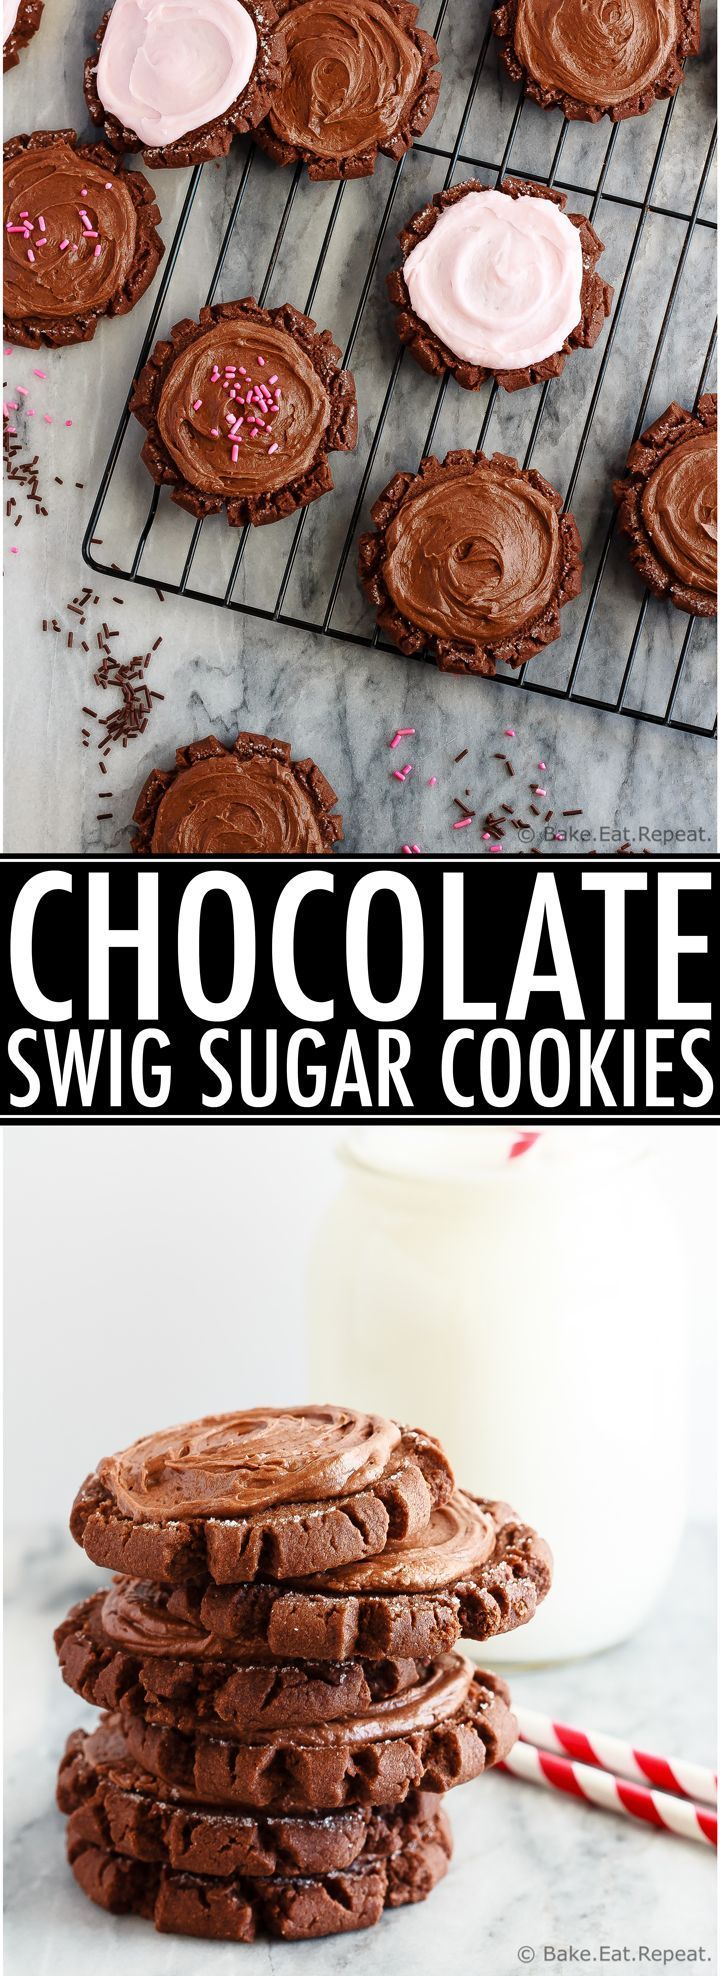 Chocolate Swig sugar cookies - soft baked sugar cookies that are perfect for Valentine's Day.